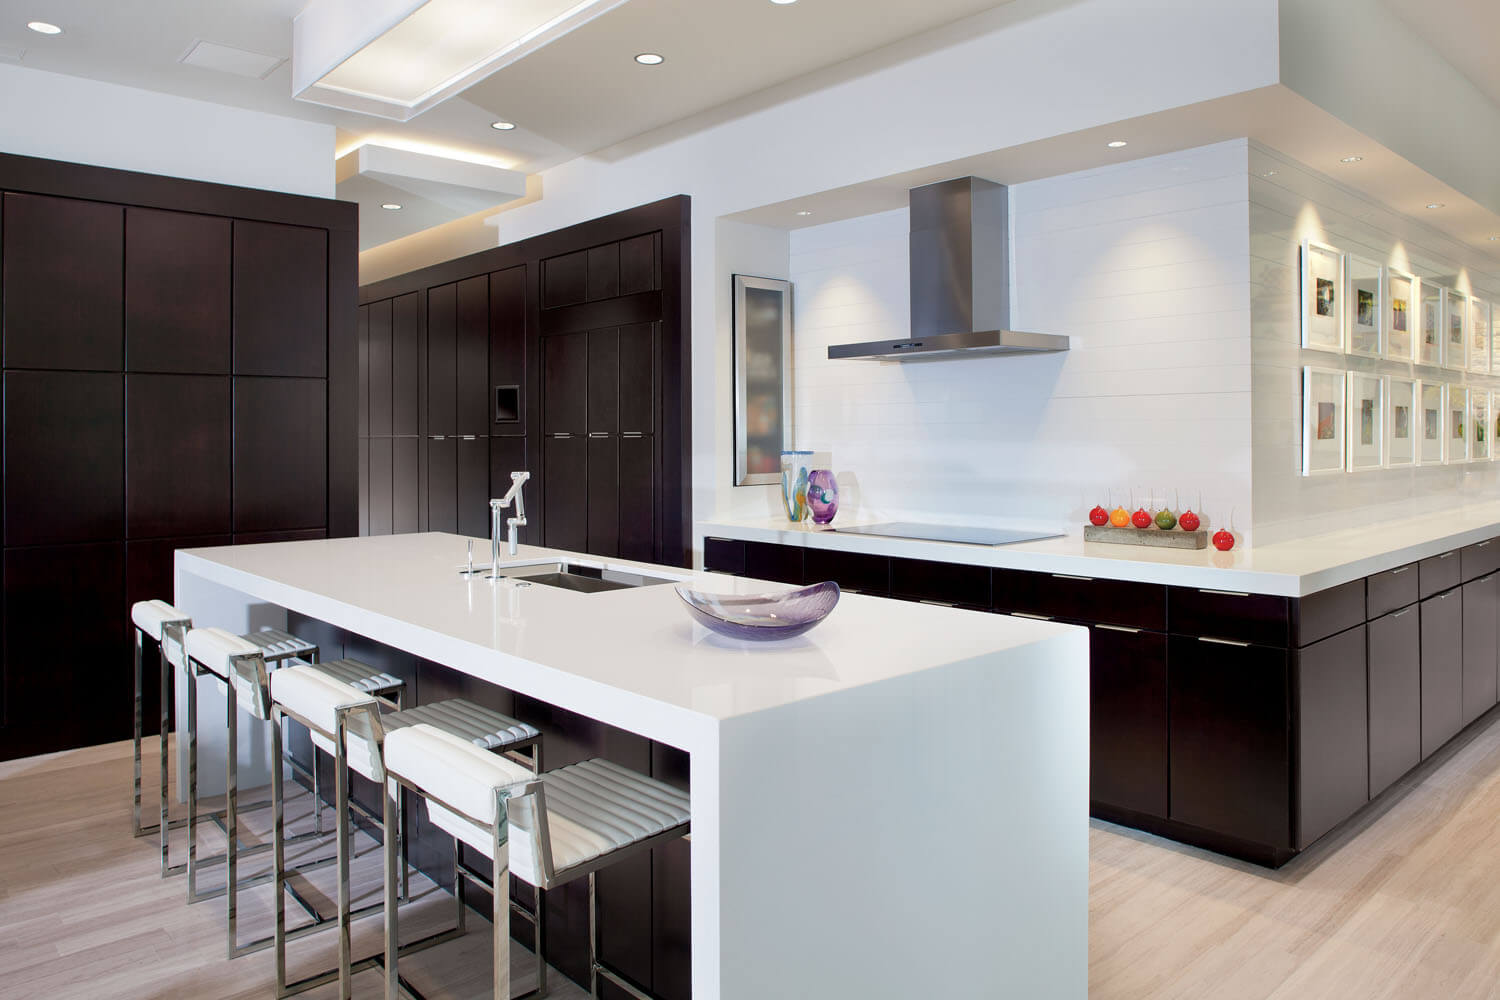 Las Mejores Cocinas Modernas The New American Home 2012 Features Timberlake Cabinetry